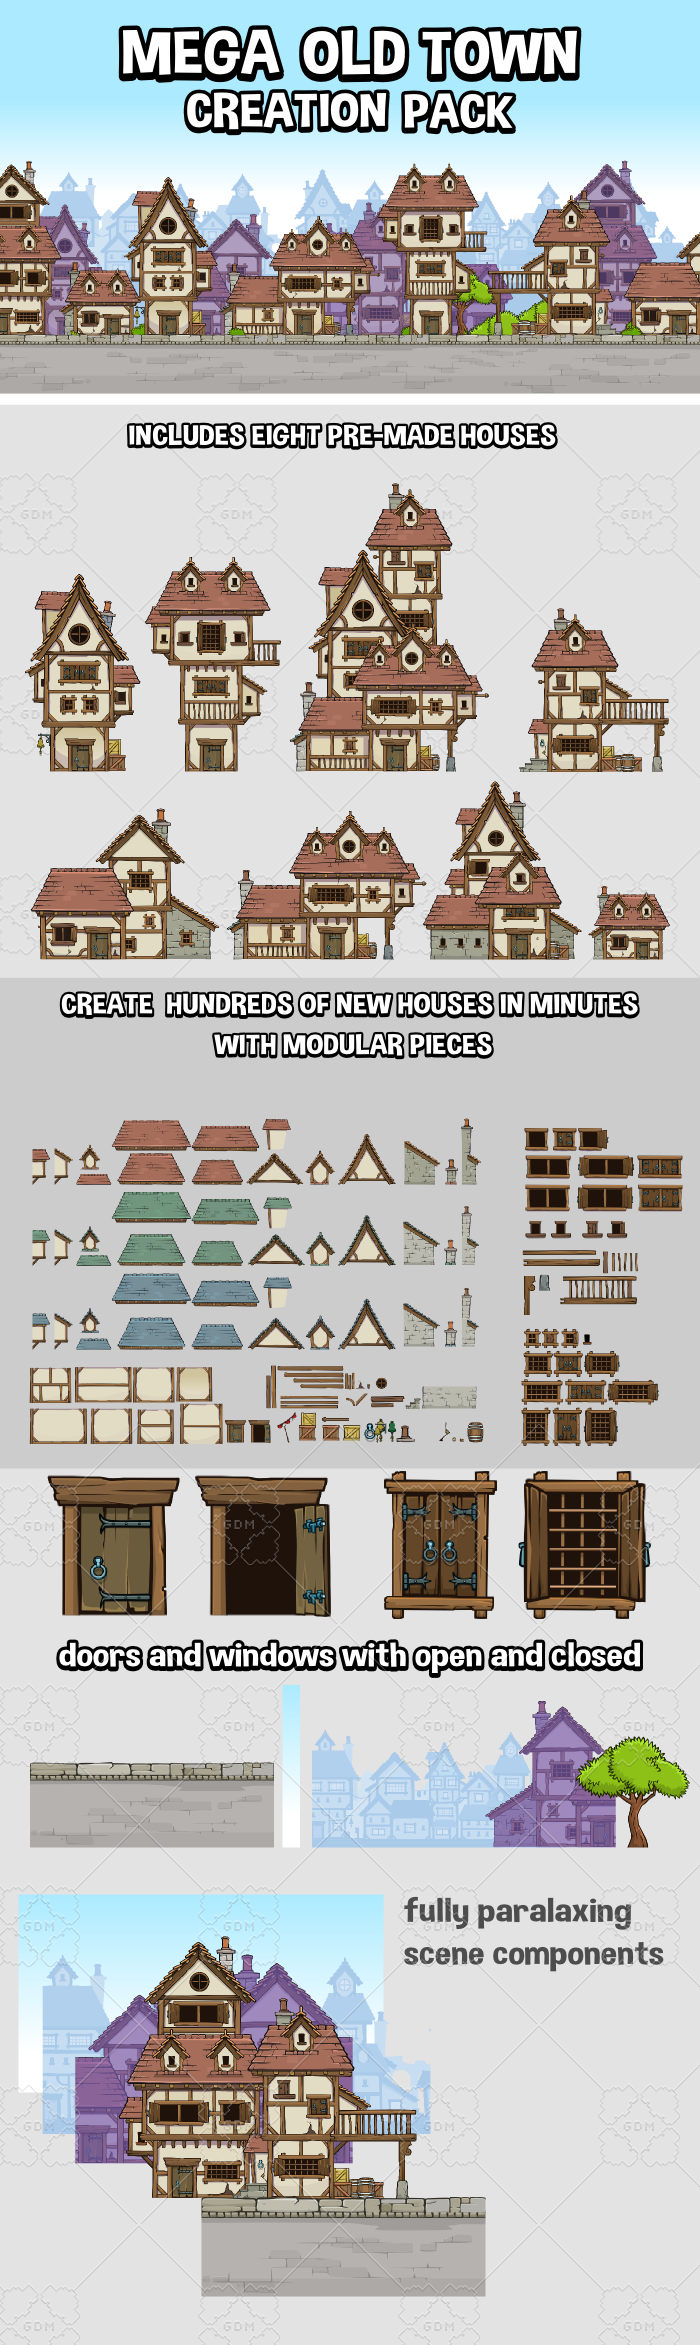 Mega old town creation pack